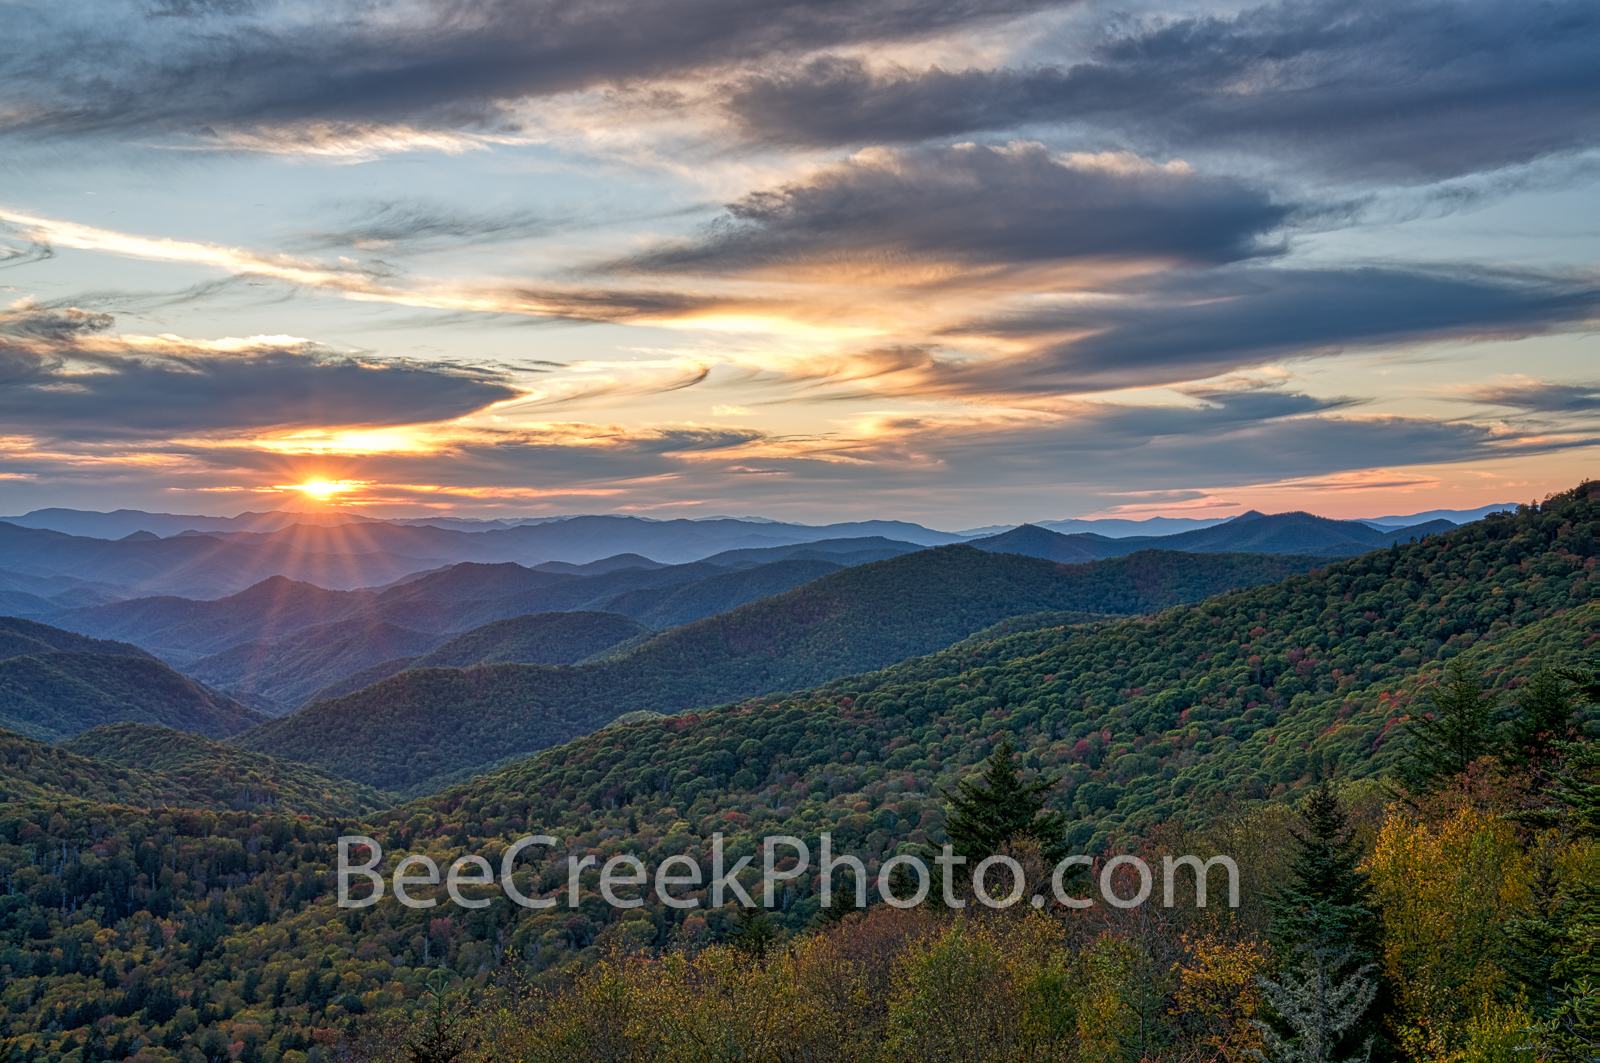 Smoky Mountain Sunset - We has these amazing moody clouds and awesome sky come in just as I was trying to capture the sunset...